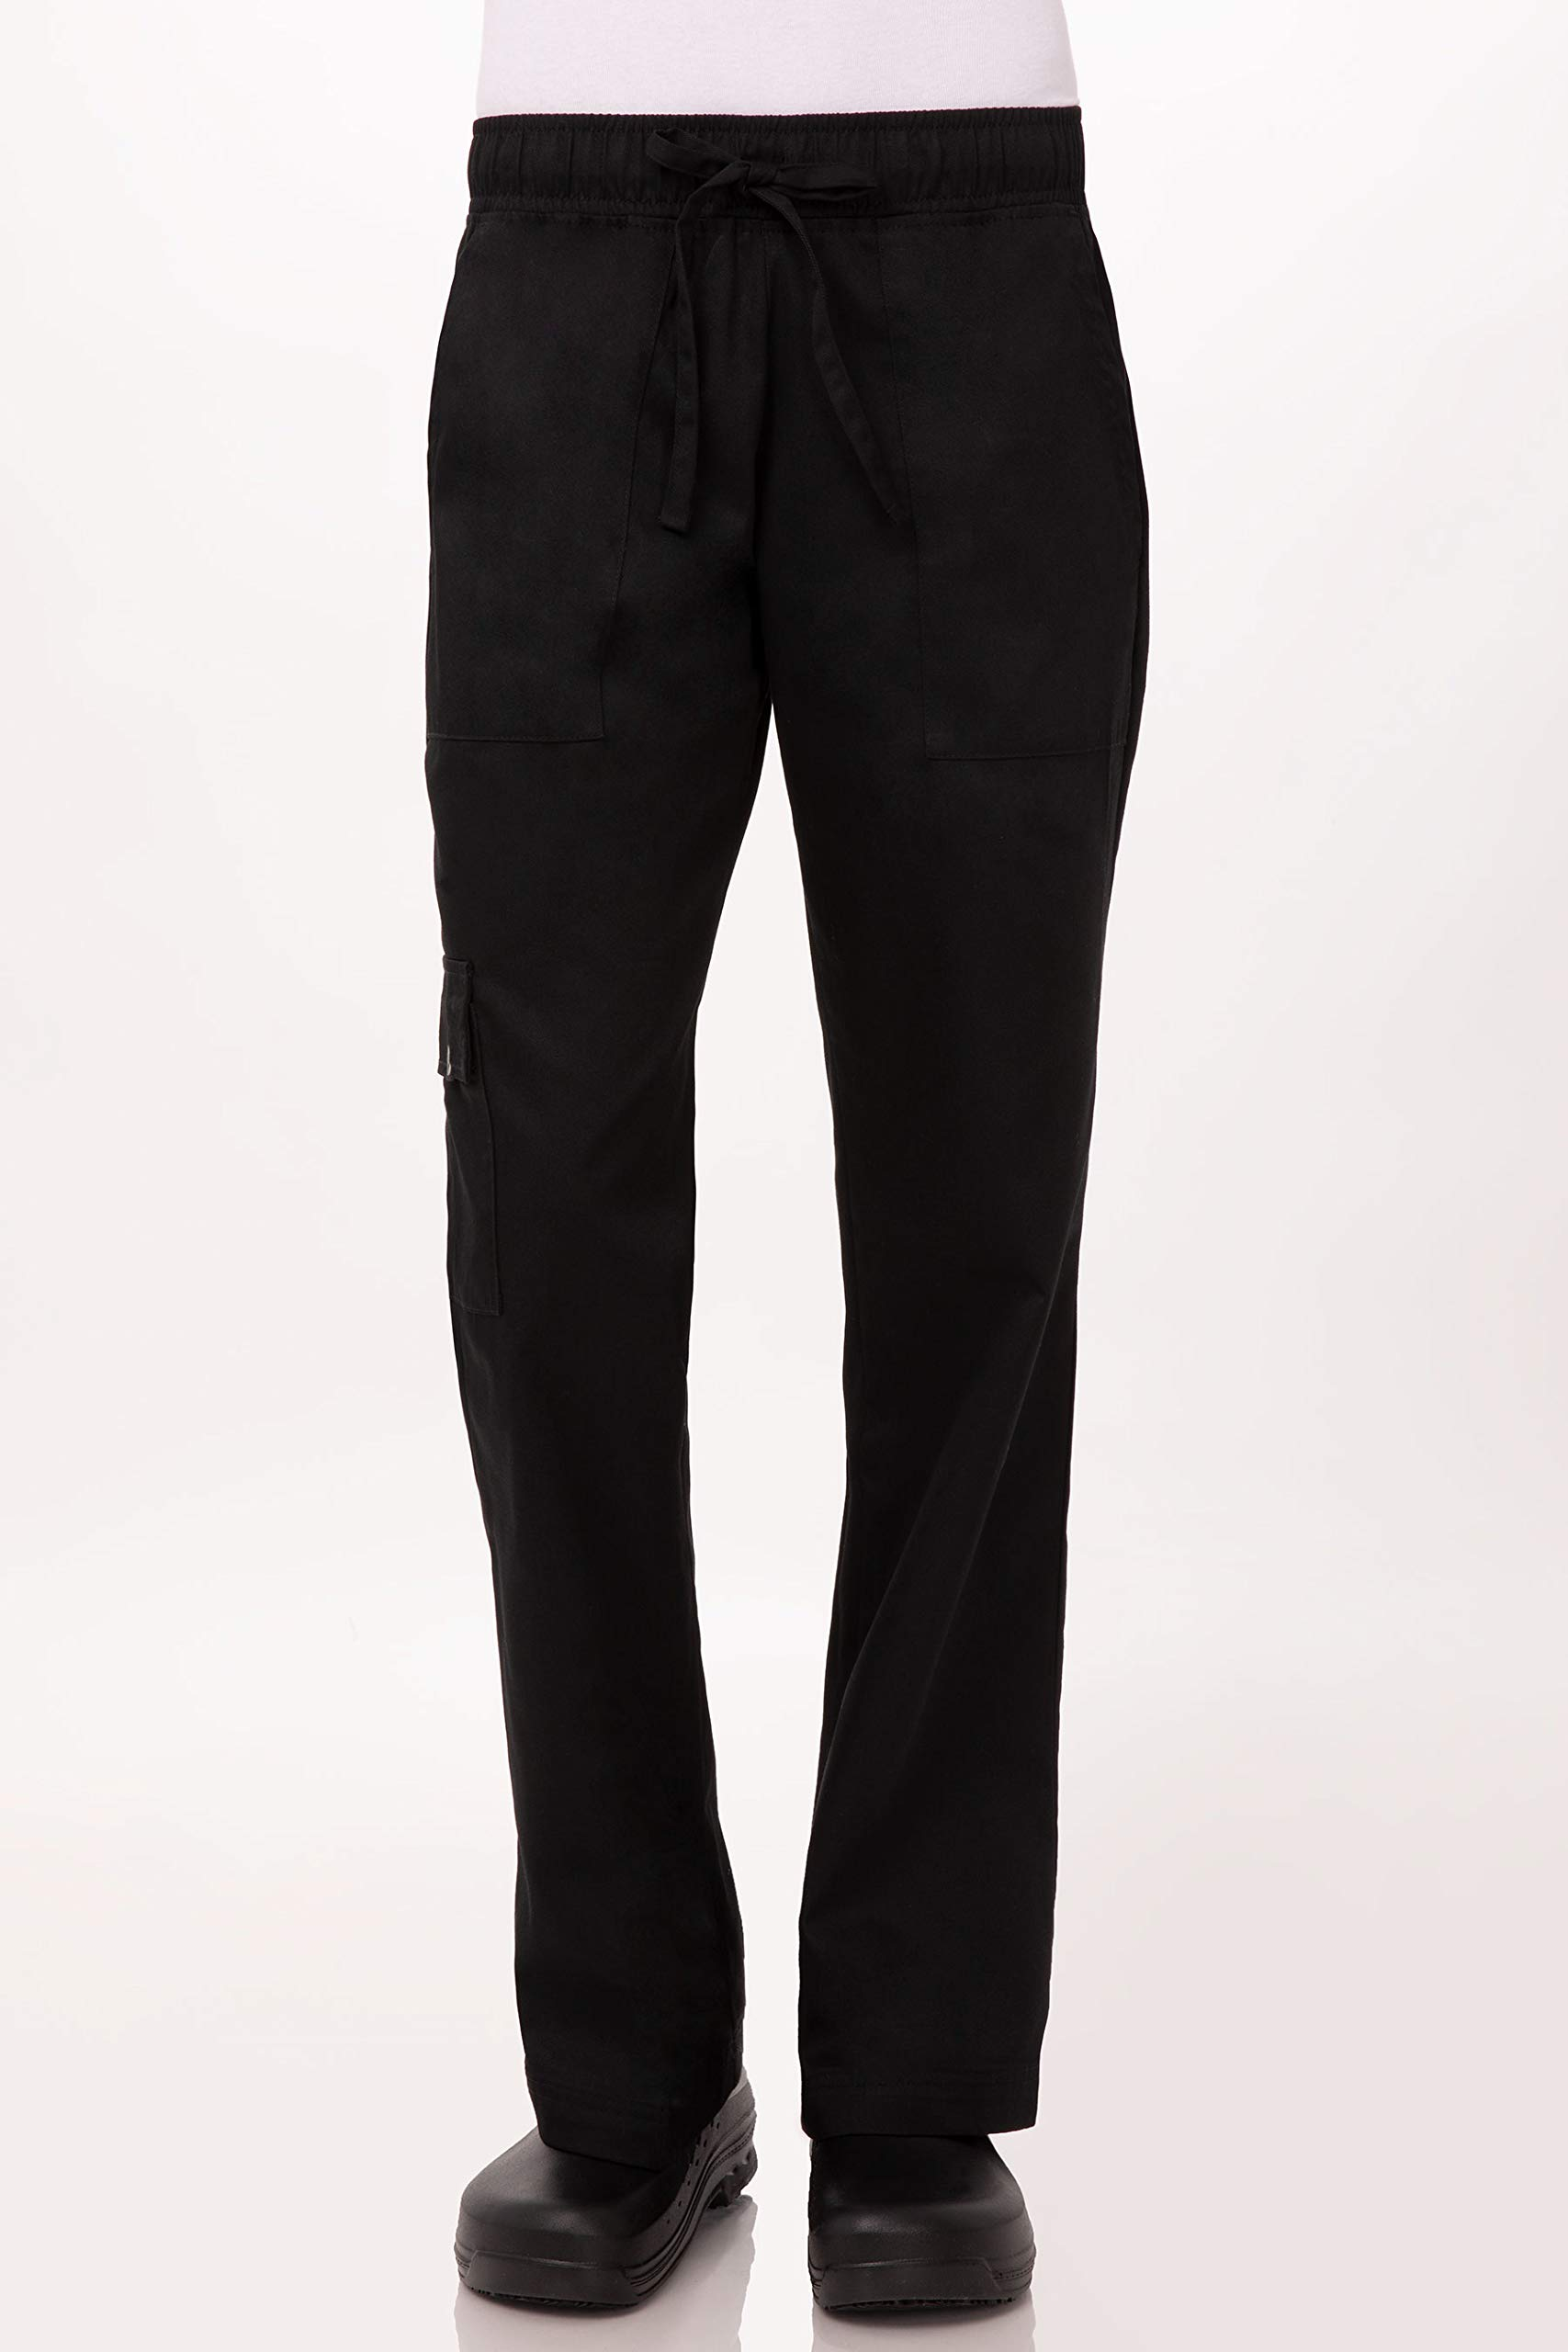 Chef Works Women's Chef Pants, Black, Small by Chef Works